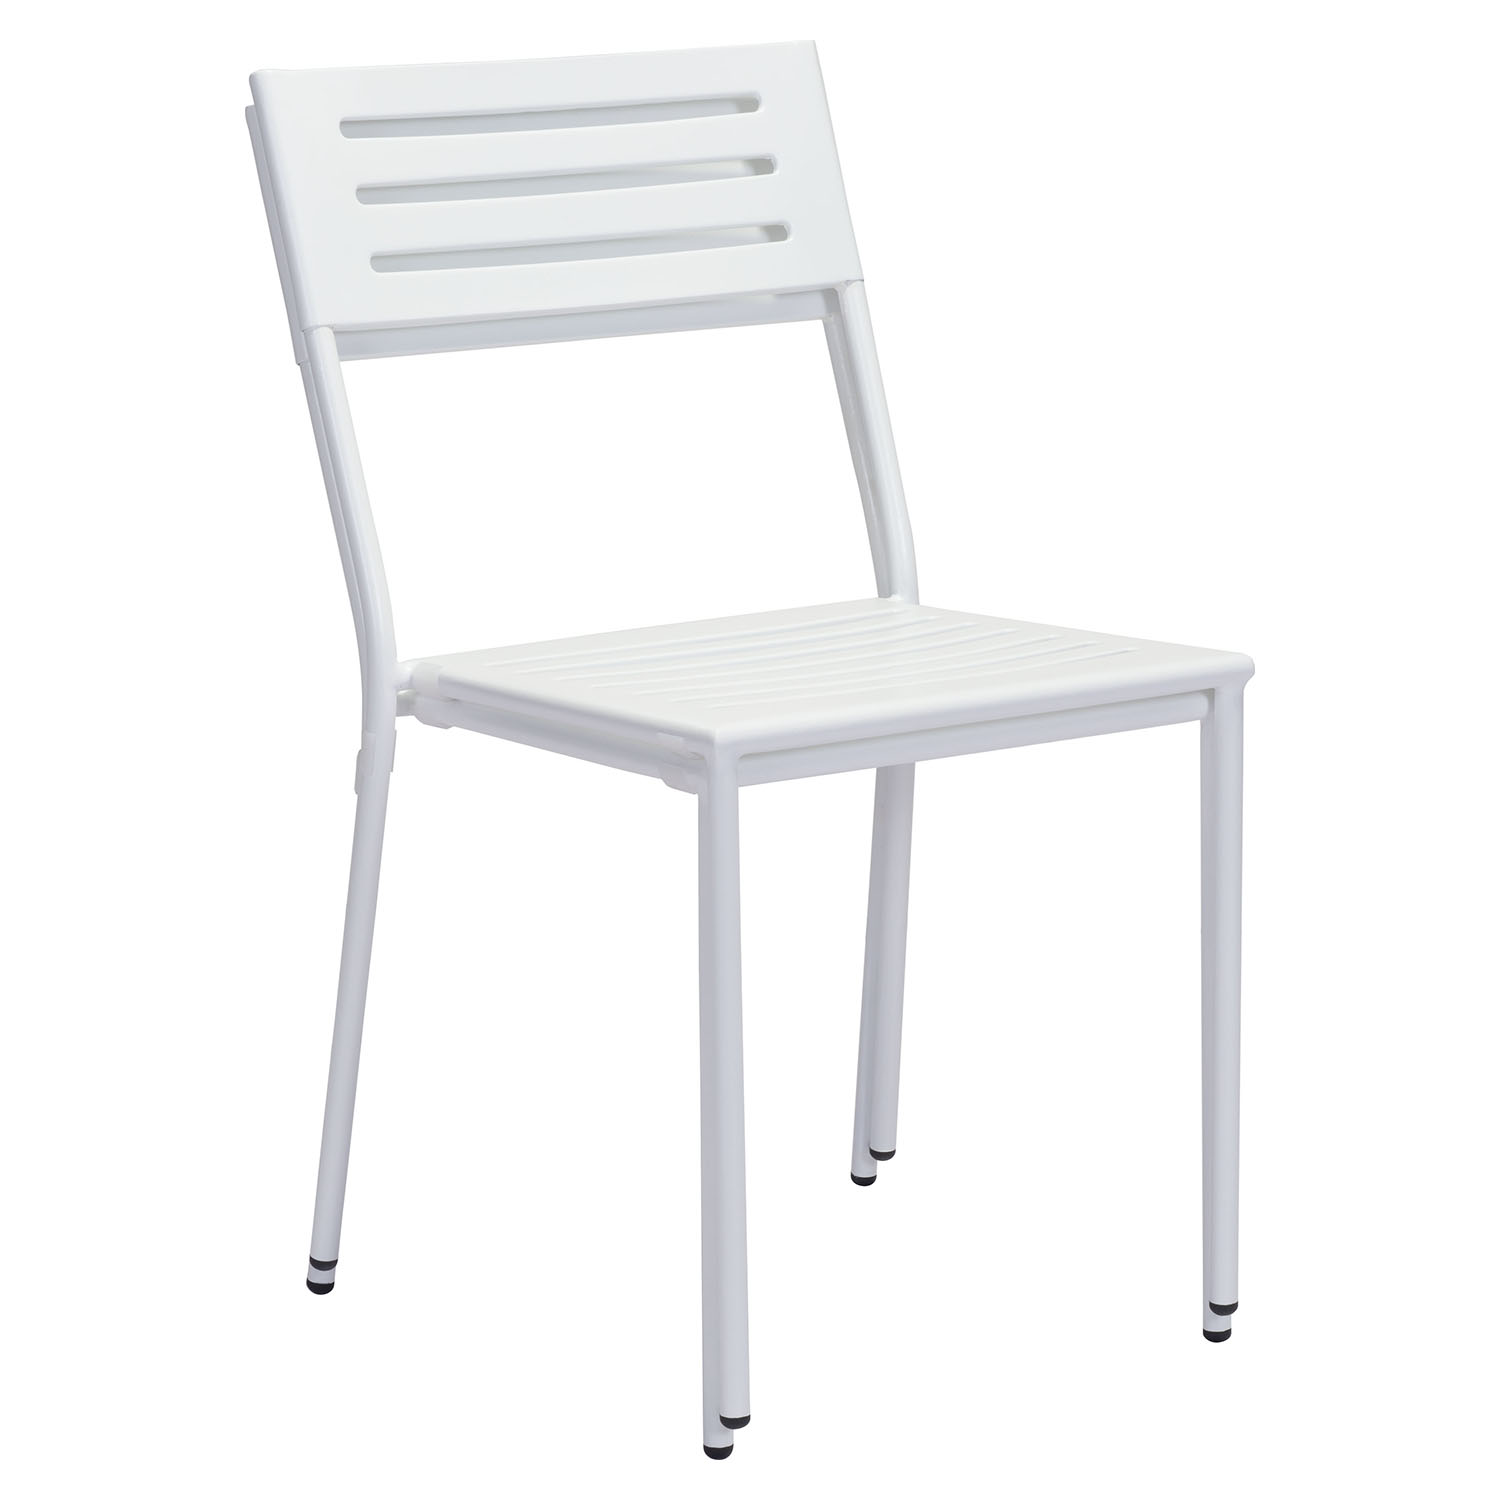 Wald Dining Chair - White - ZM-703608